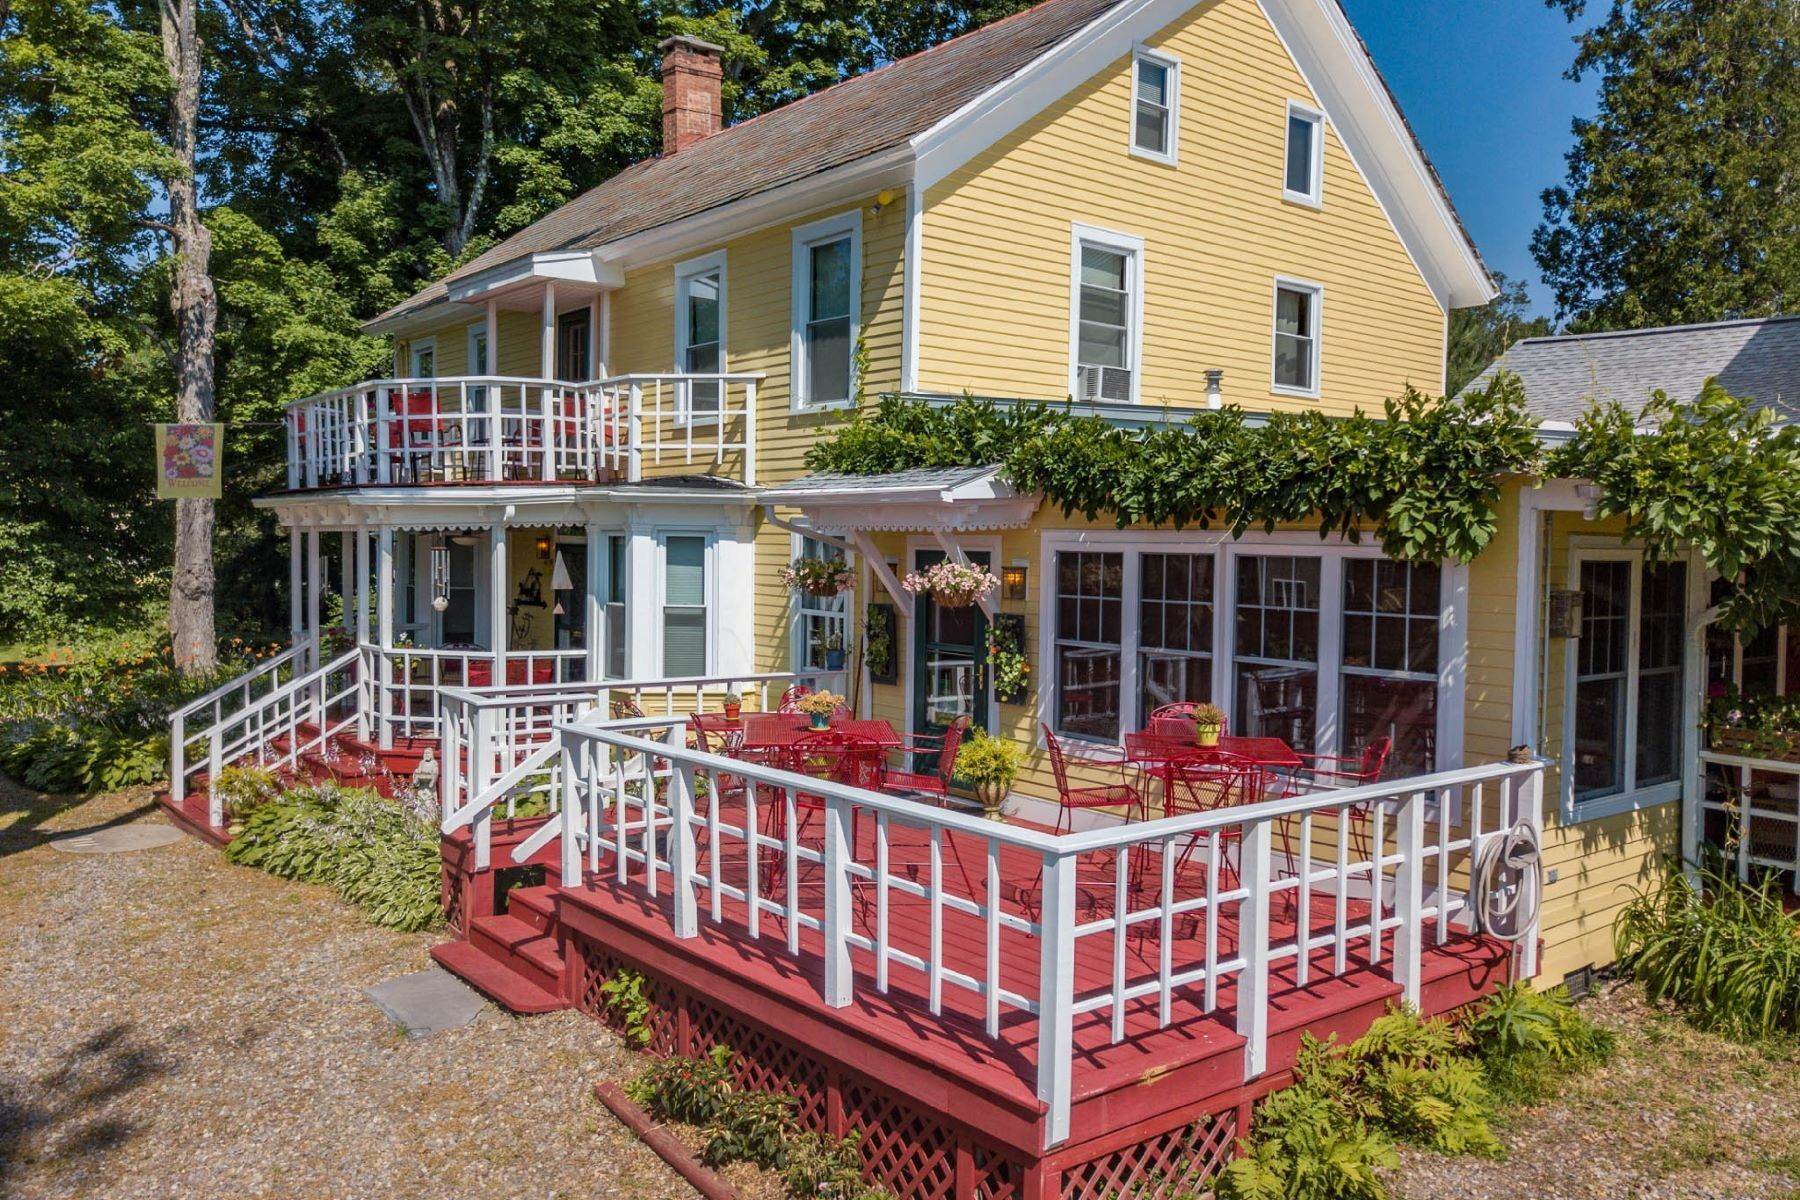 Single Family Homes for Sale at Saratoga Farmstead B&B 41A Locust Grove Rd Saratoga Springs, New York 12866 United States